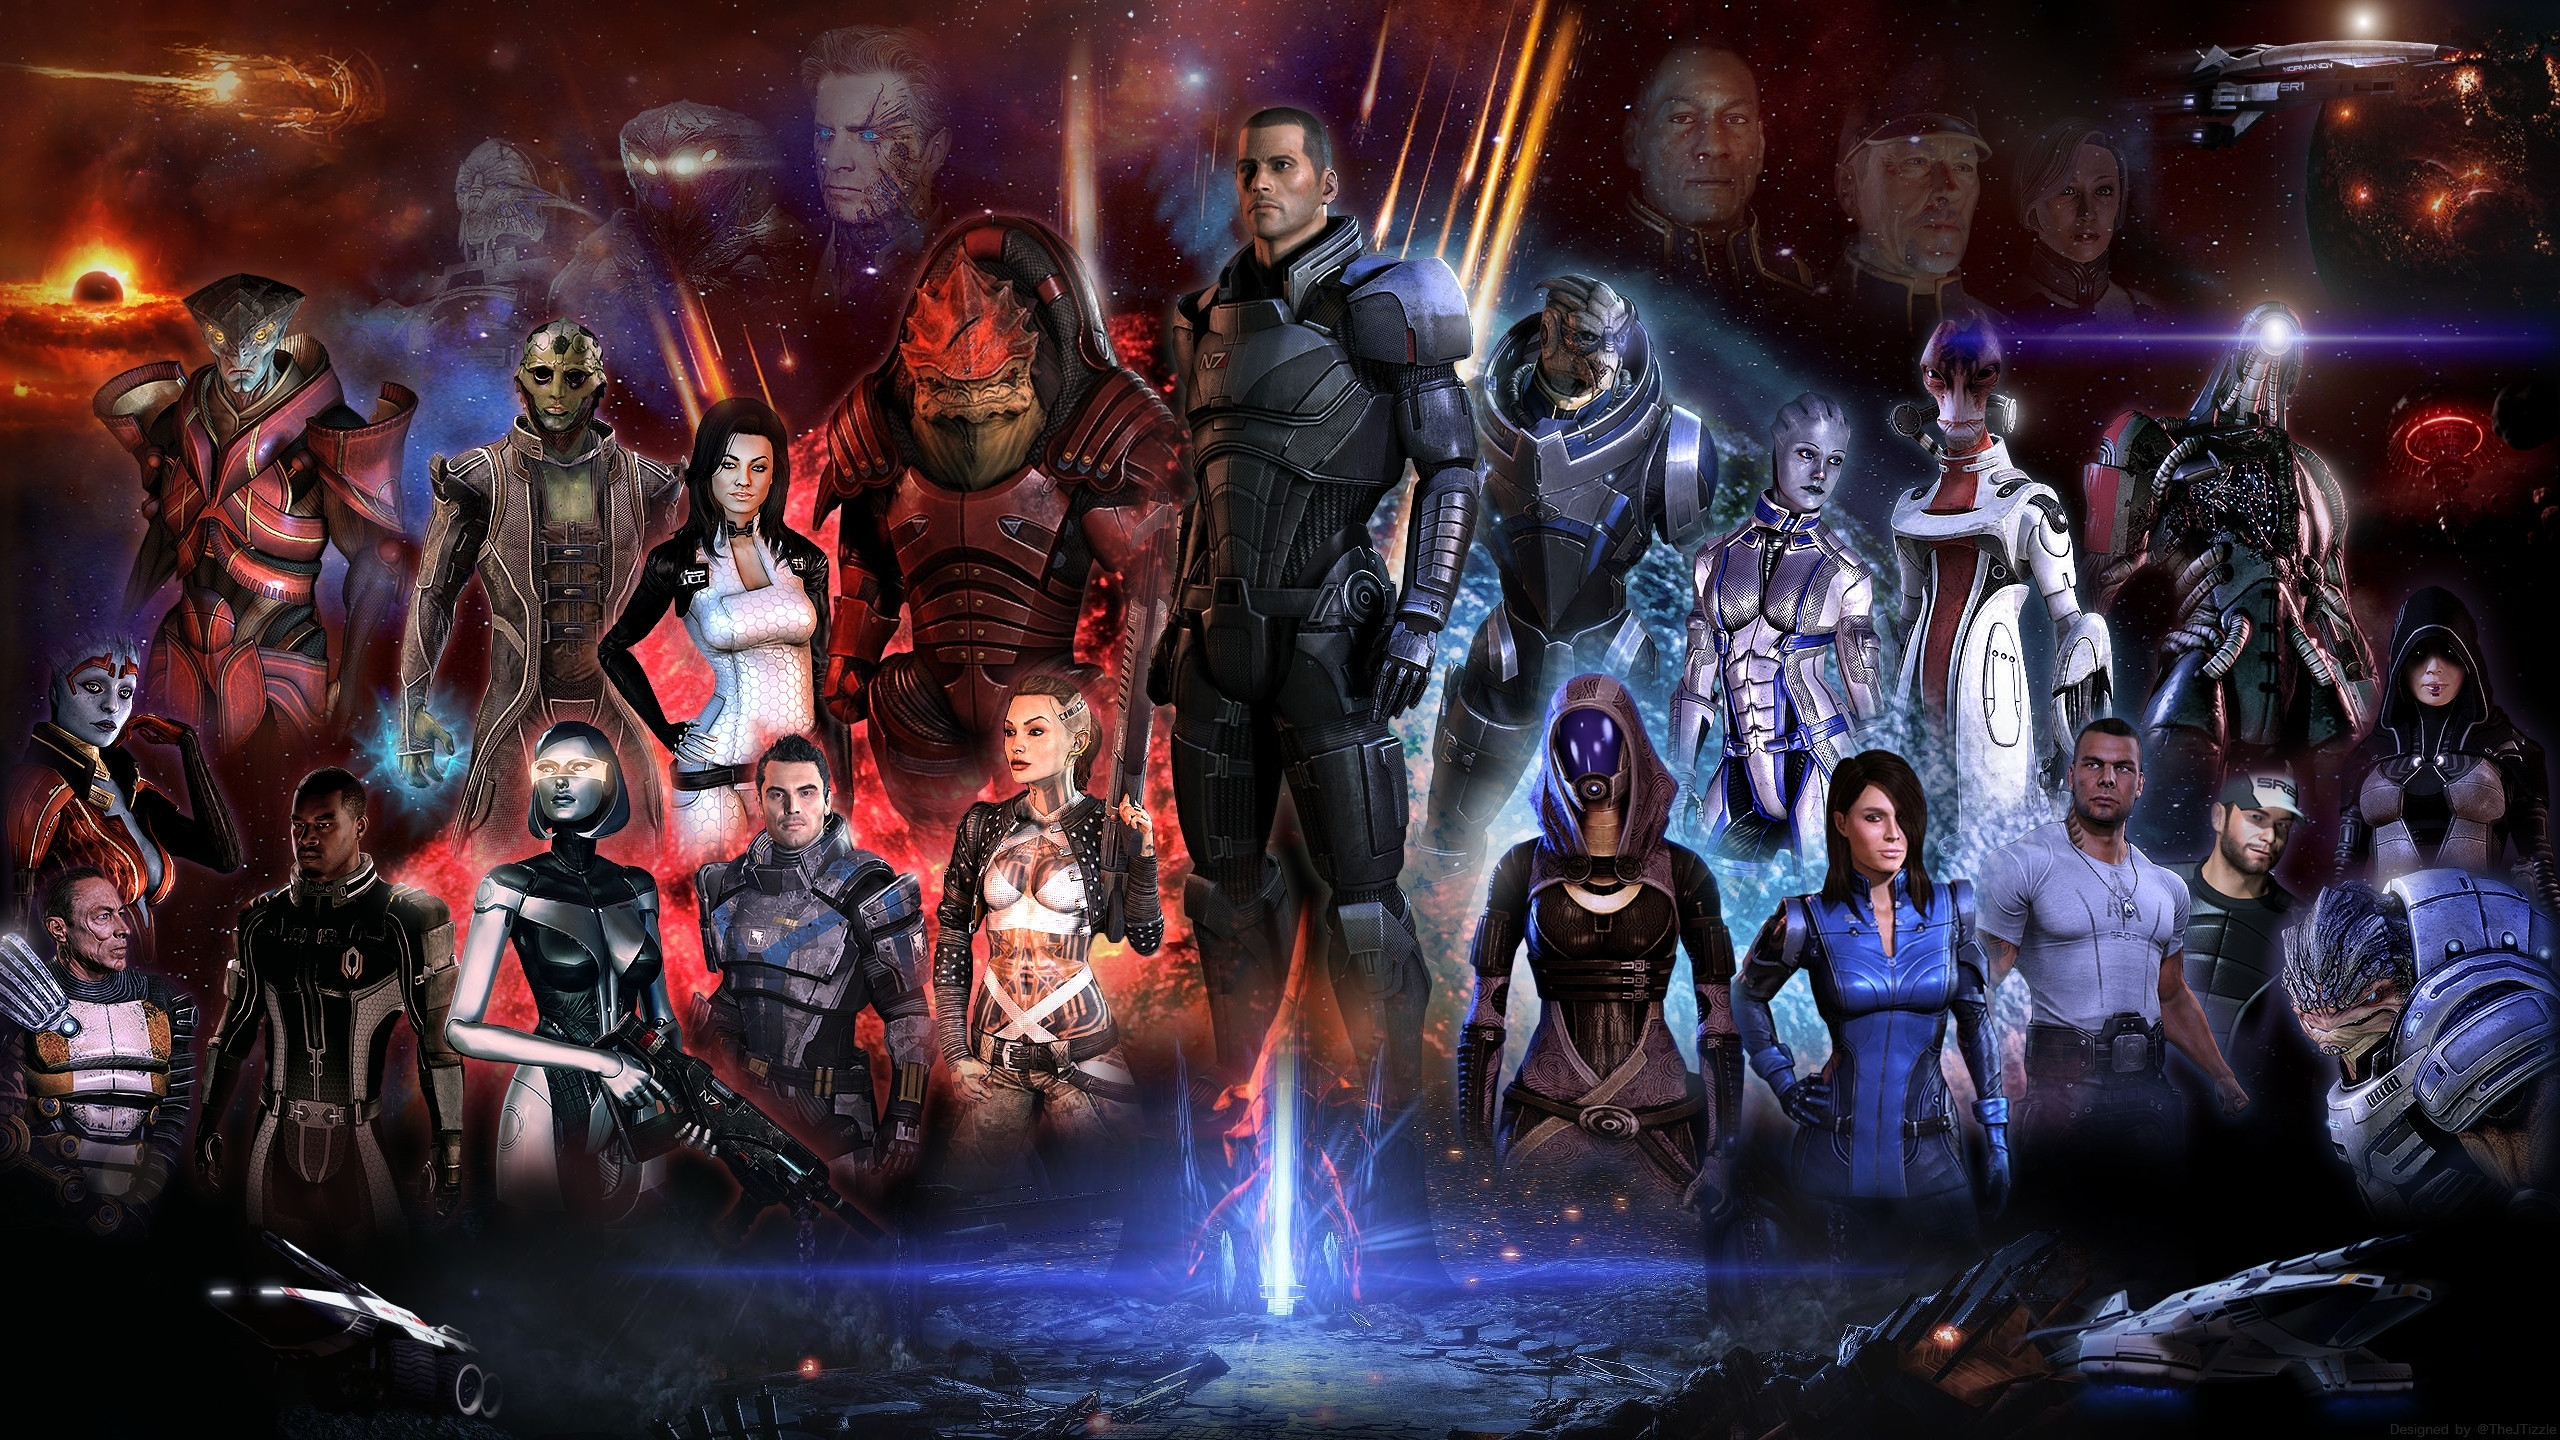 desktop mass effect hd wallpapers - wallpaper.wiki